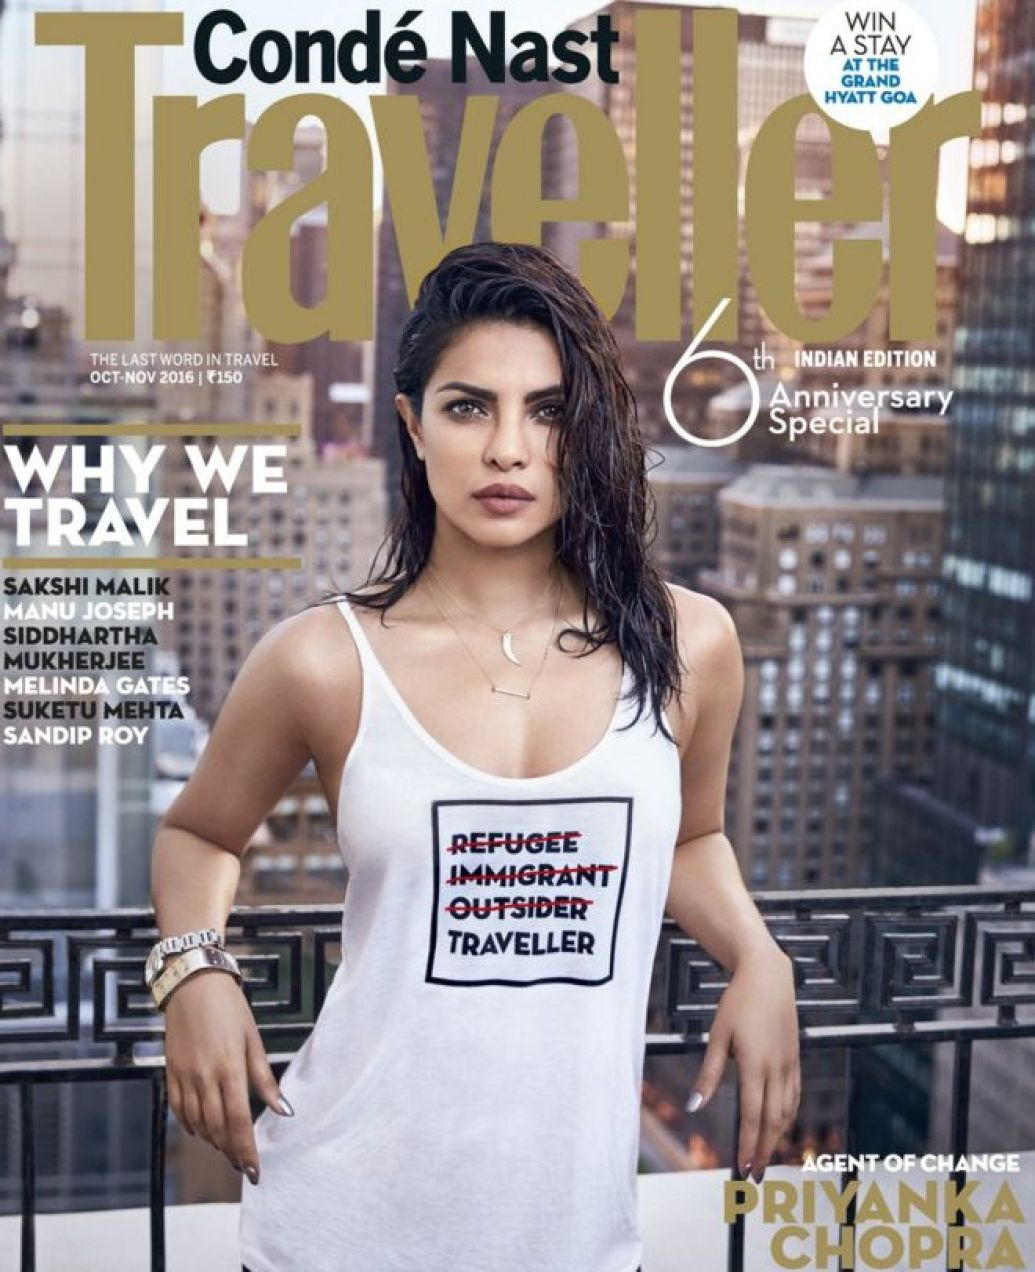 Conde Nast Traveller India cover photo